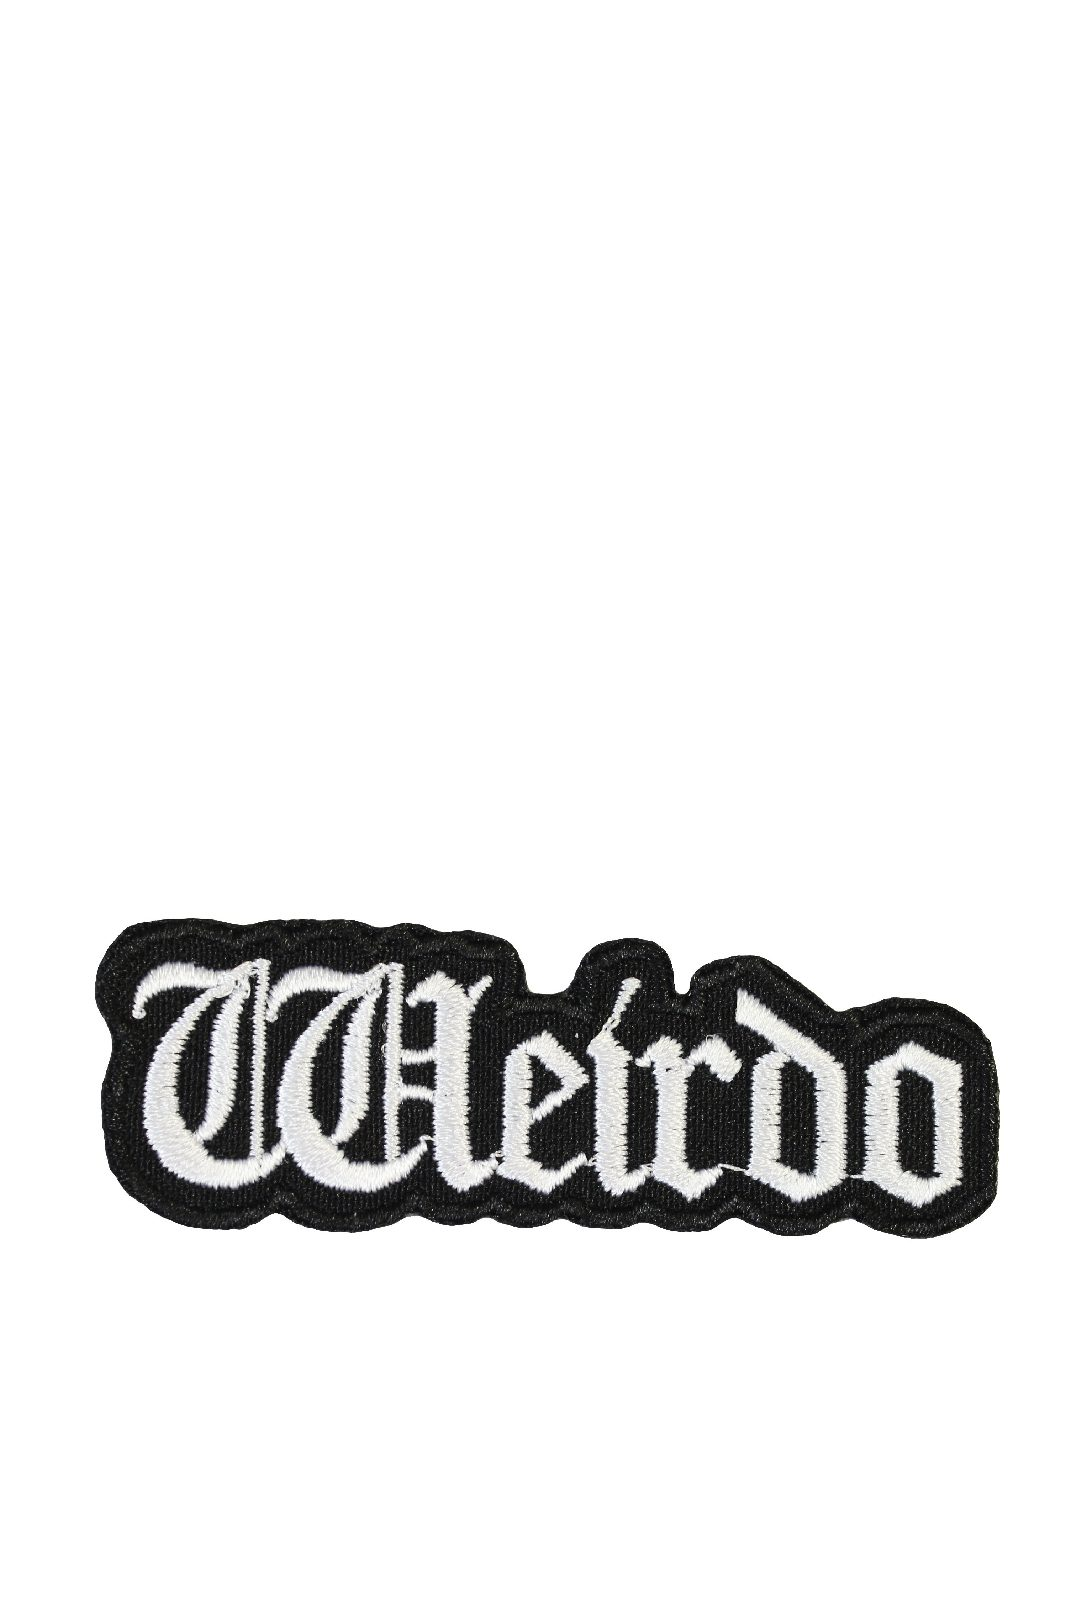 Wierdo Patch